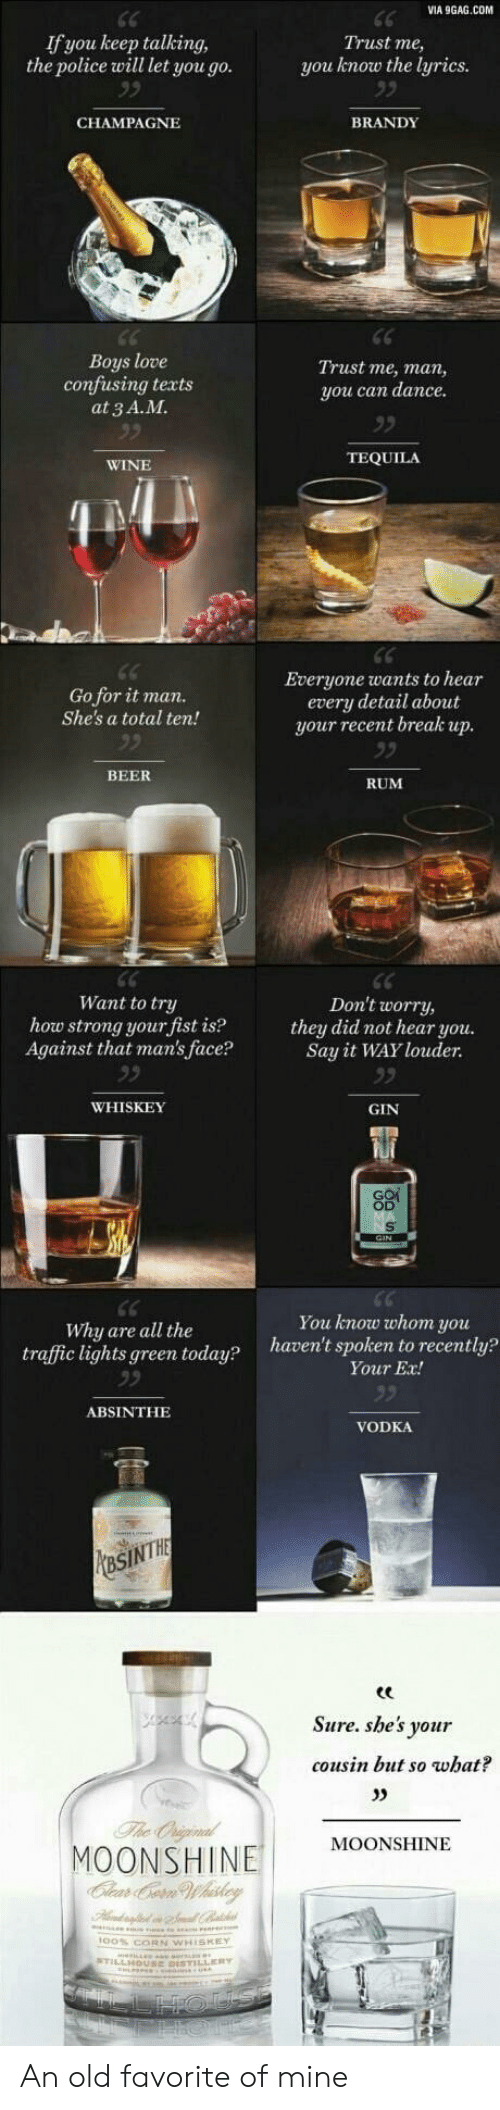 whiskey: VIA 9GAG.COM  If you keep talking,  the police will let you go.  Trust me,  you know the lyrics.  BRANDY  CHAMPAGNЕ  Boys love  confusing texts  at 3 A.M.  Trust me, man,  you can dancе.  TEQUILA  WINE  Everyone wants to hear  every detail about  your recent break up.  Go for it man.  She's a total ten!  BEER  RUM  Want to try  how strong your fist is?  Against that man's face?  Don't worry,  they did not hear you.  Say it WAY louder  WHISKEY  GIN  You know whoт yои  haven't spoken to recently?  Why are all the  traffic lights green today?  Your Ex!  ABSINTHE  VODKA  MaSINTHE  Sure.she's your  cousin but so what?  The Oniginal  MOONSHINE  Clear Ce Whaskey  MOONSHINE An old favorite of mine